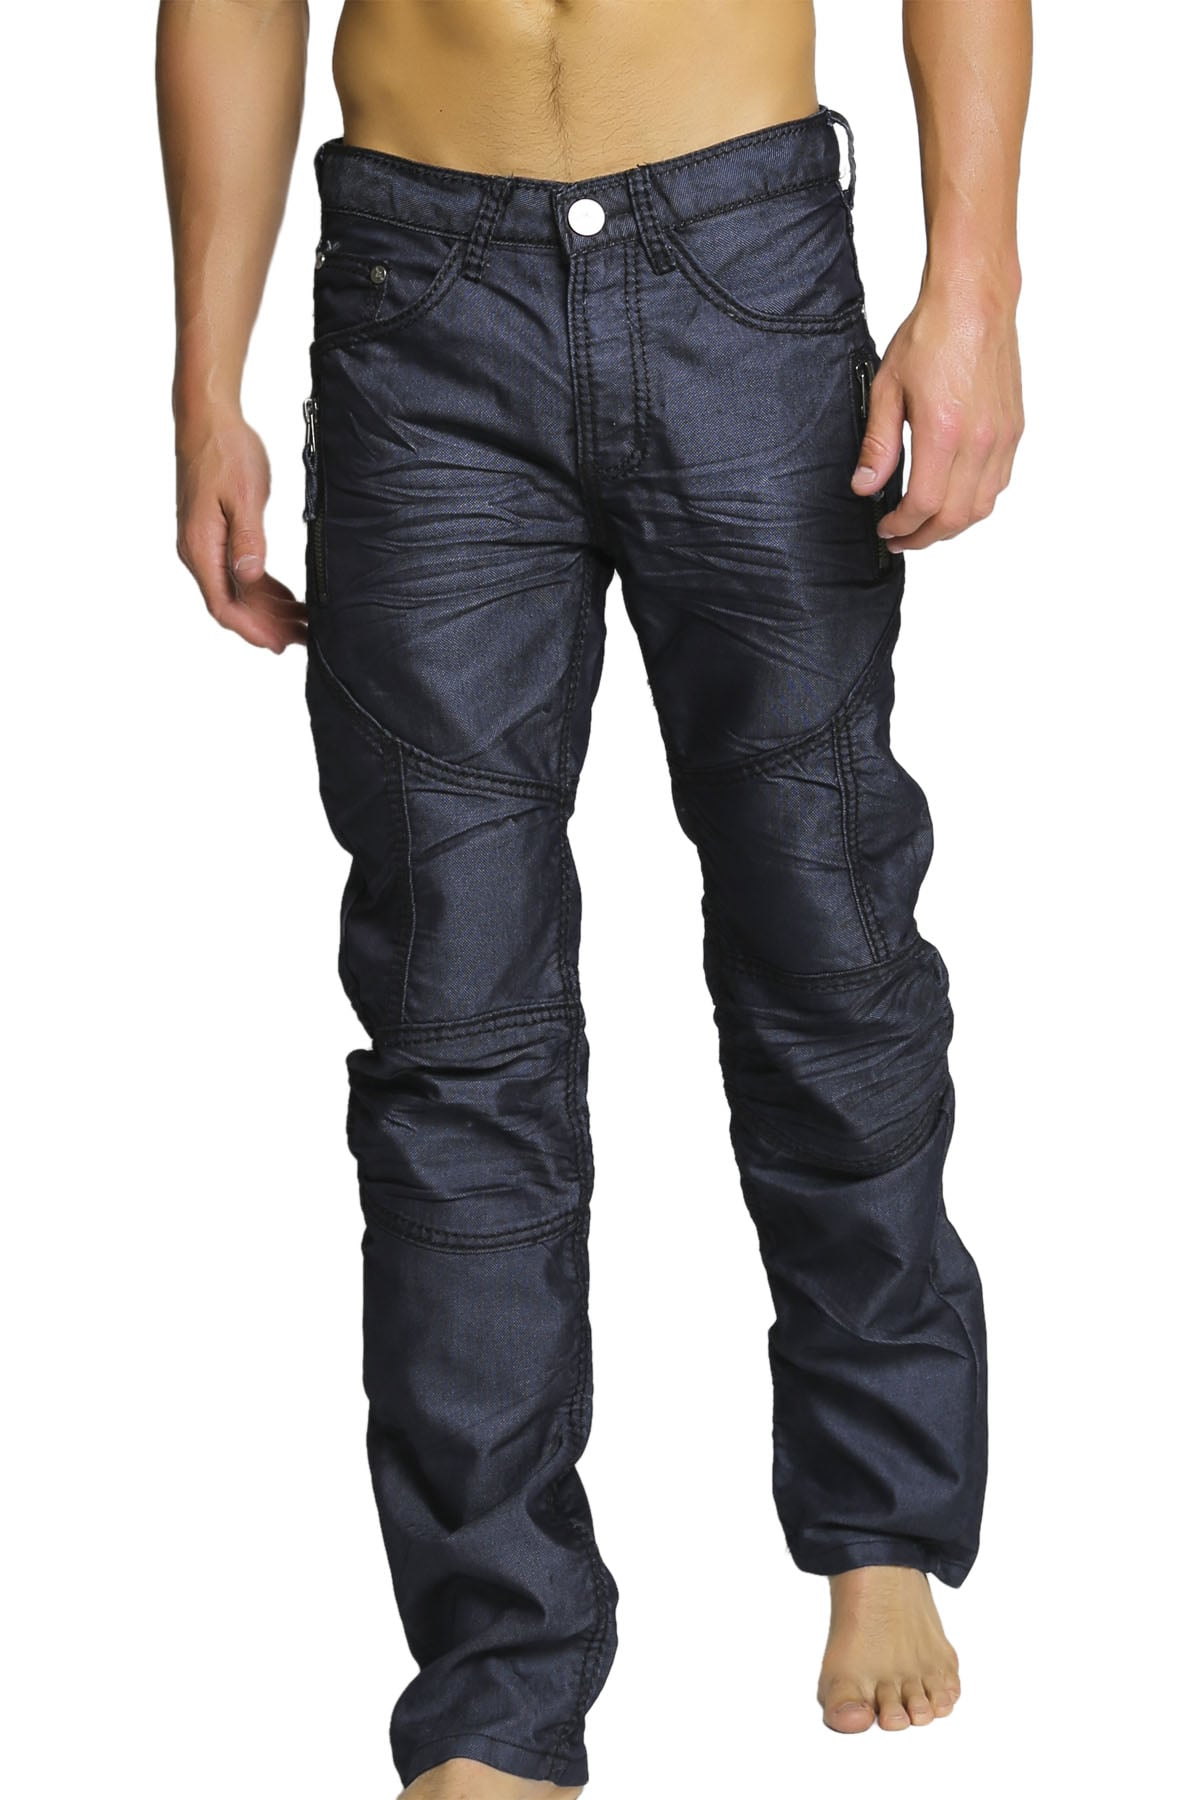 V.I.P. Collection Dark Blue Amboy Jean